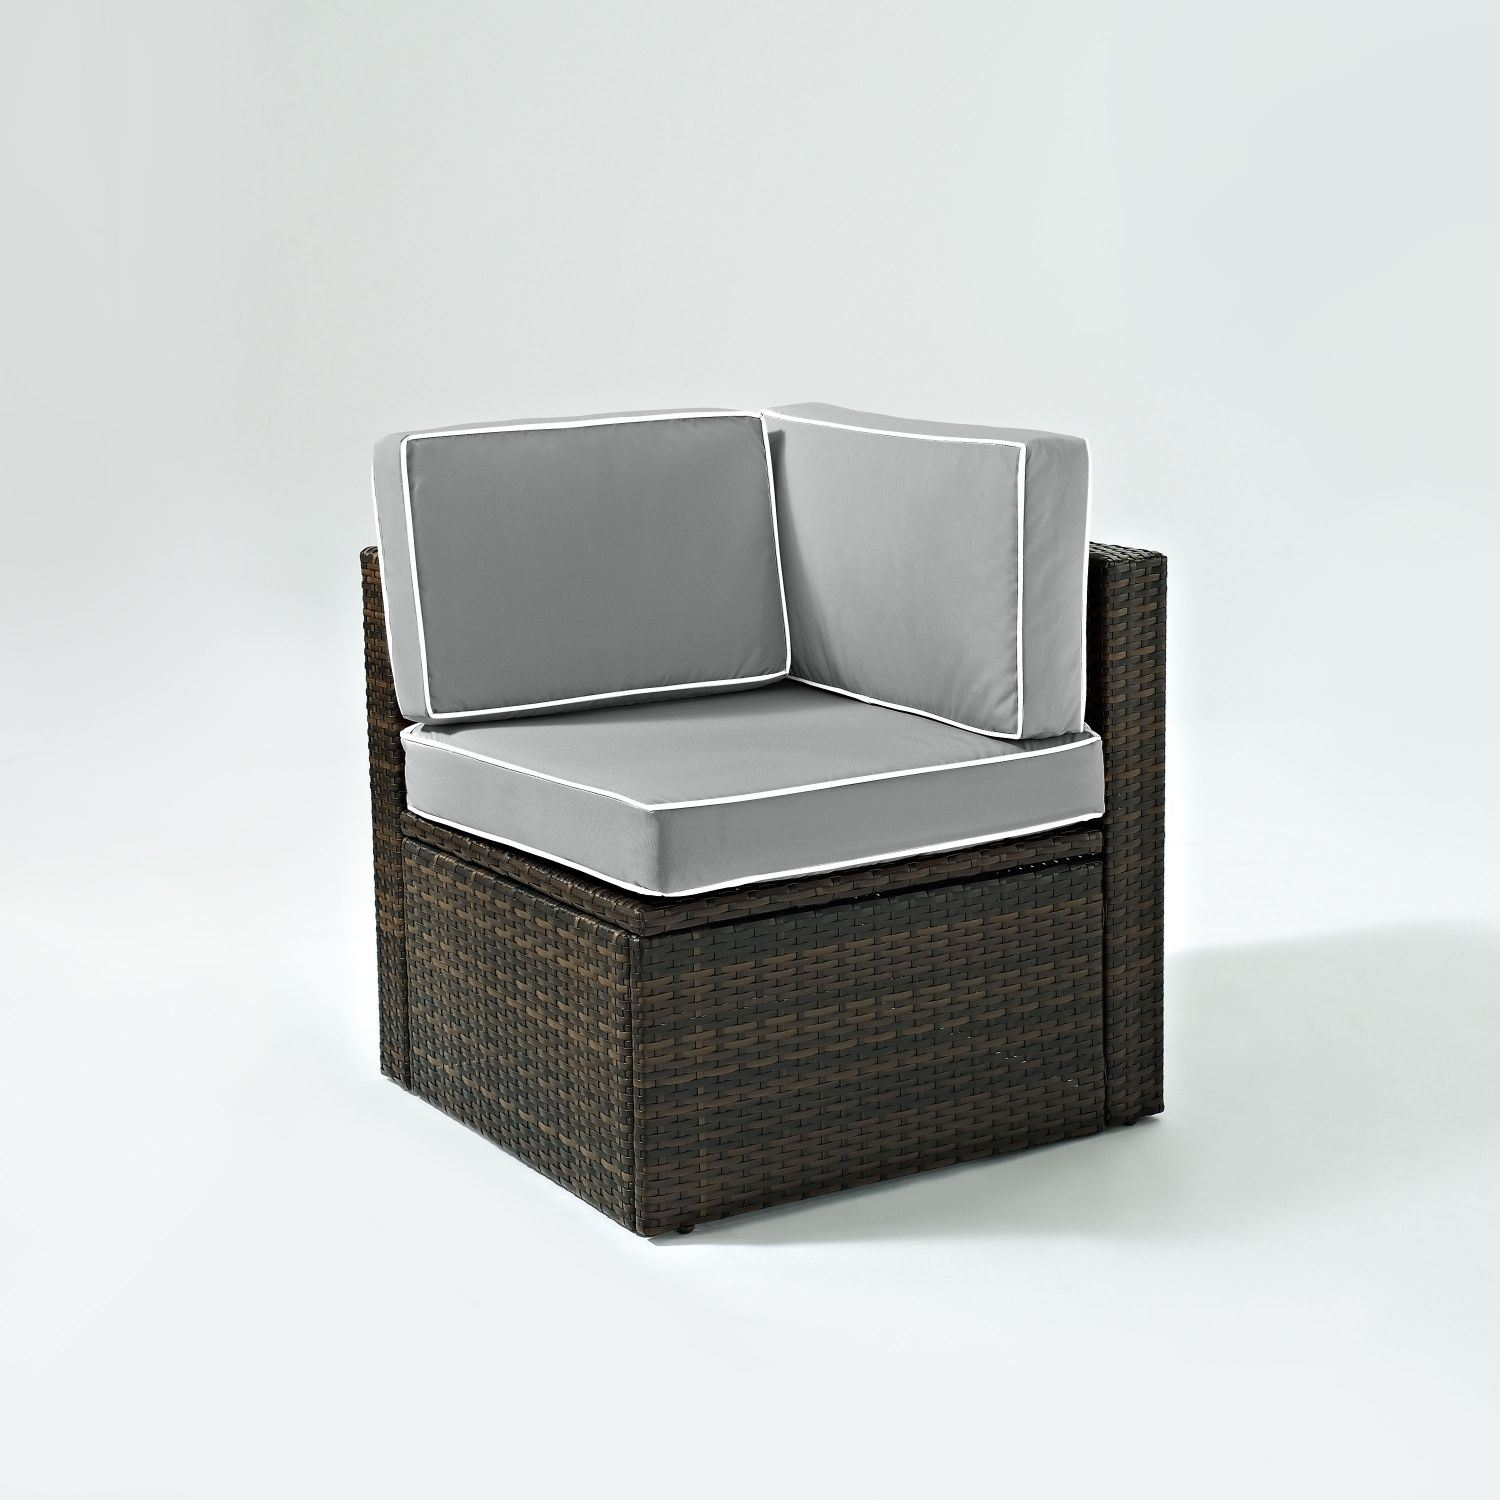 Picture of PALM HARBOR OUTDOOR WICKER CENTER CHAIR IN BROWN W